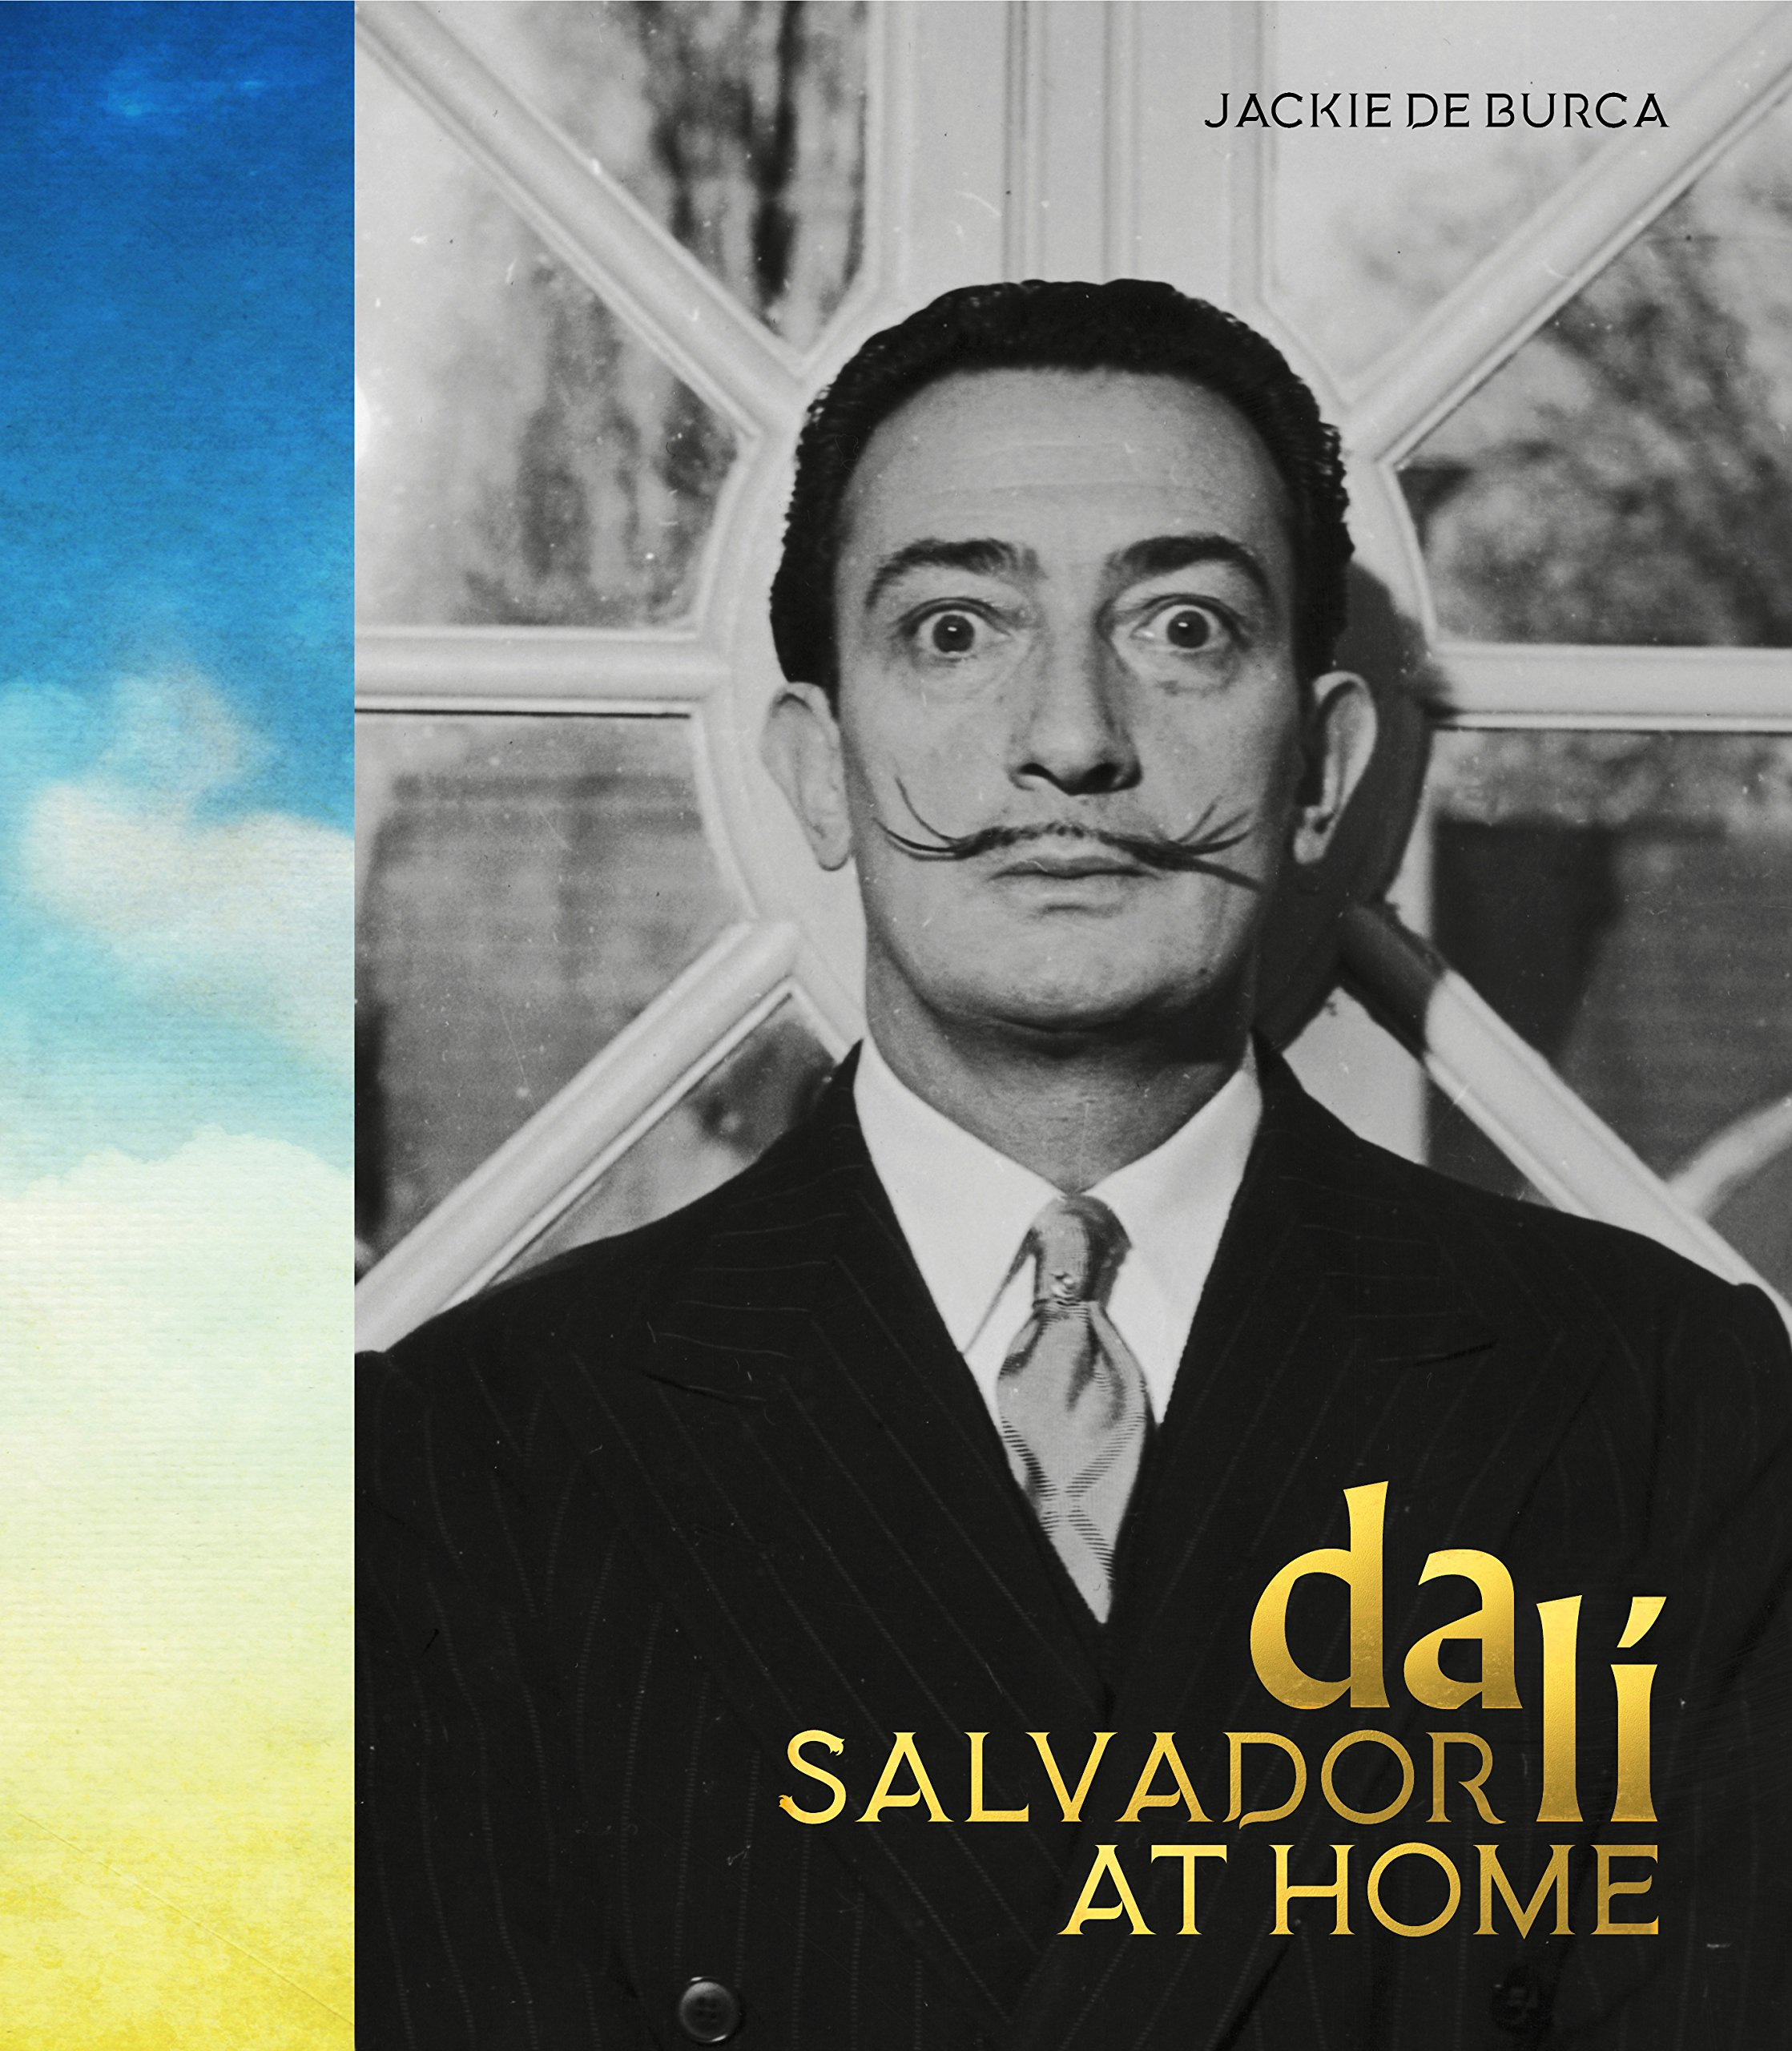 Salvador dali at home hardcover october 25 2018